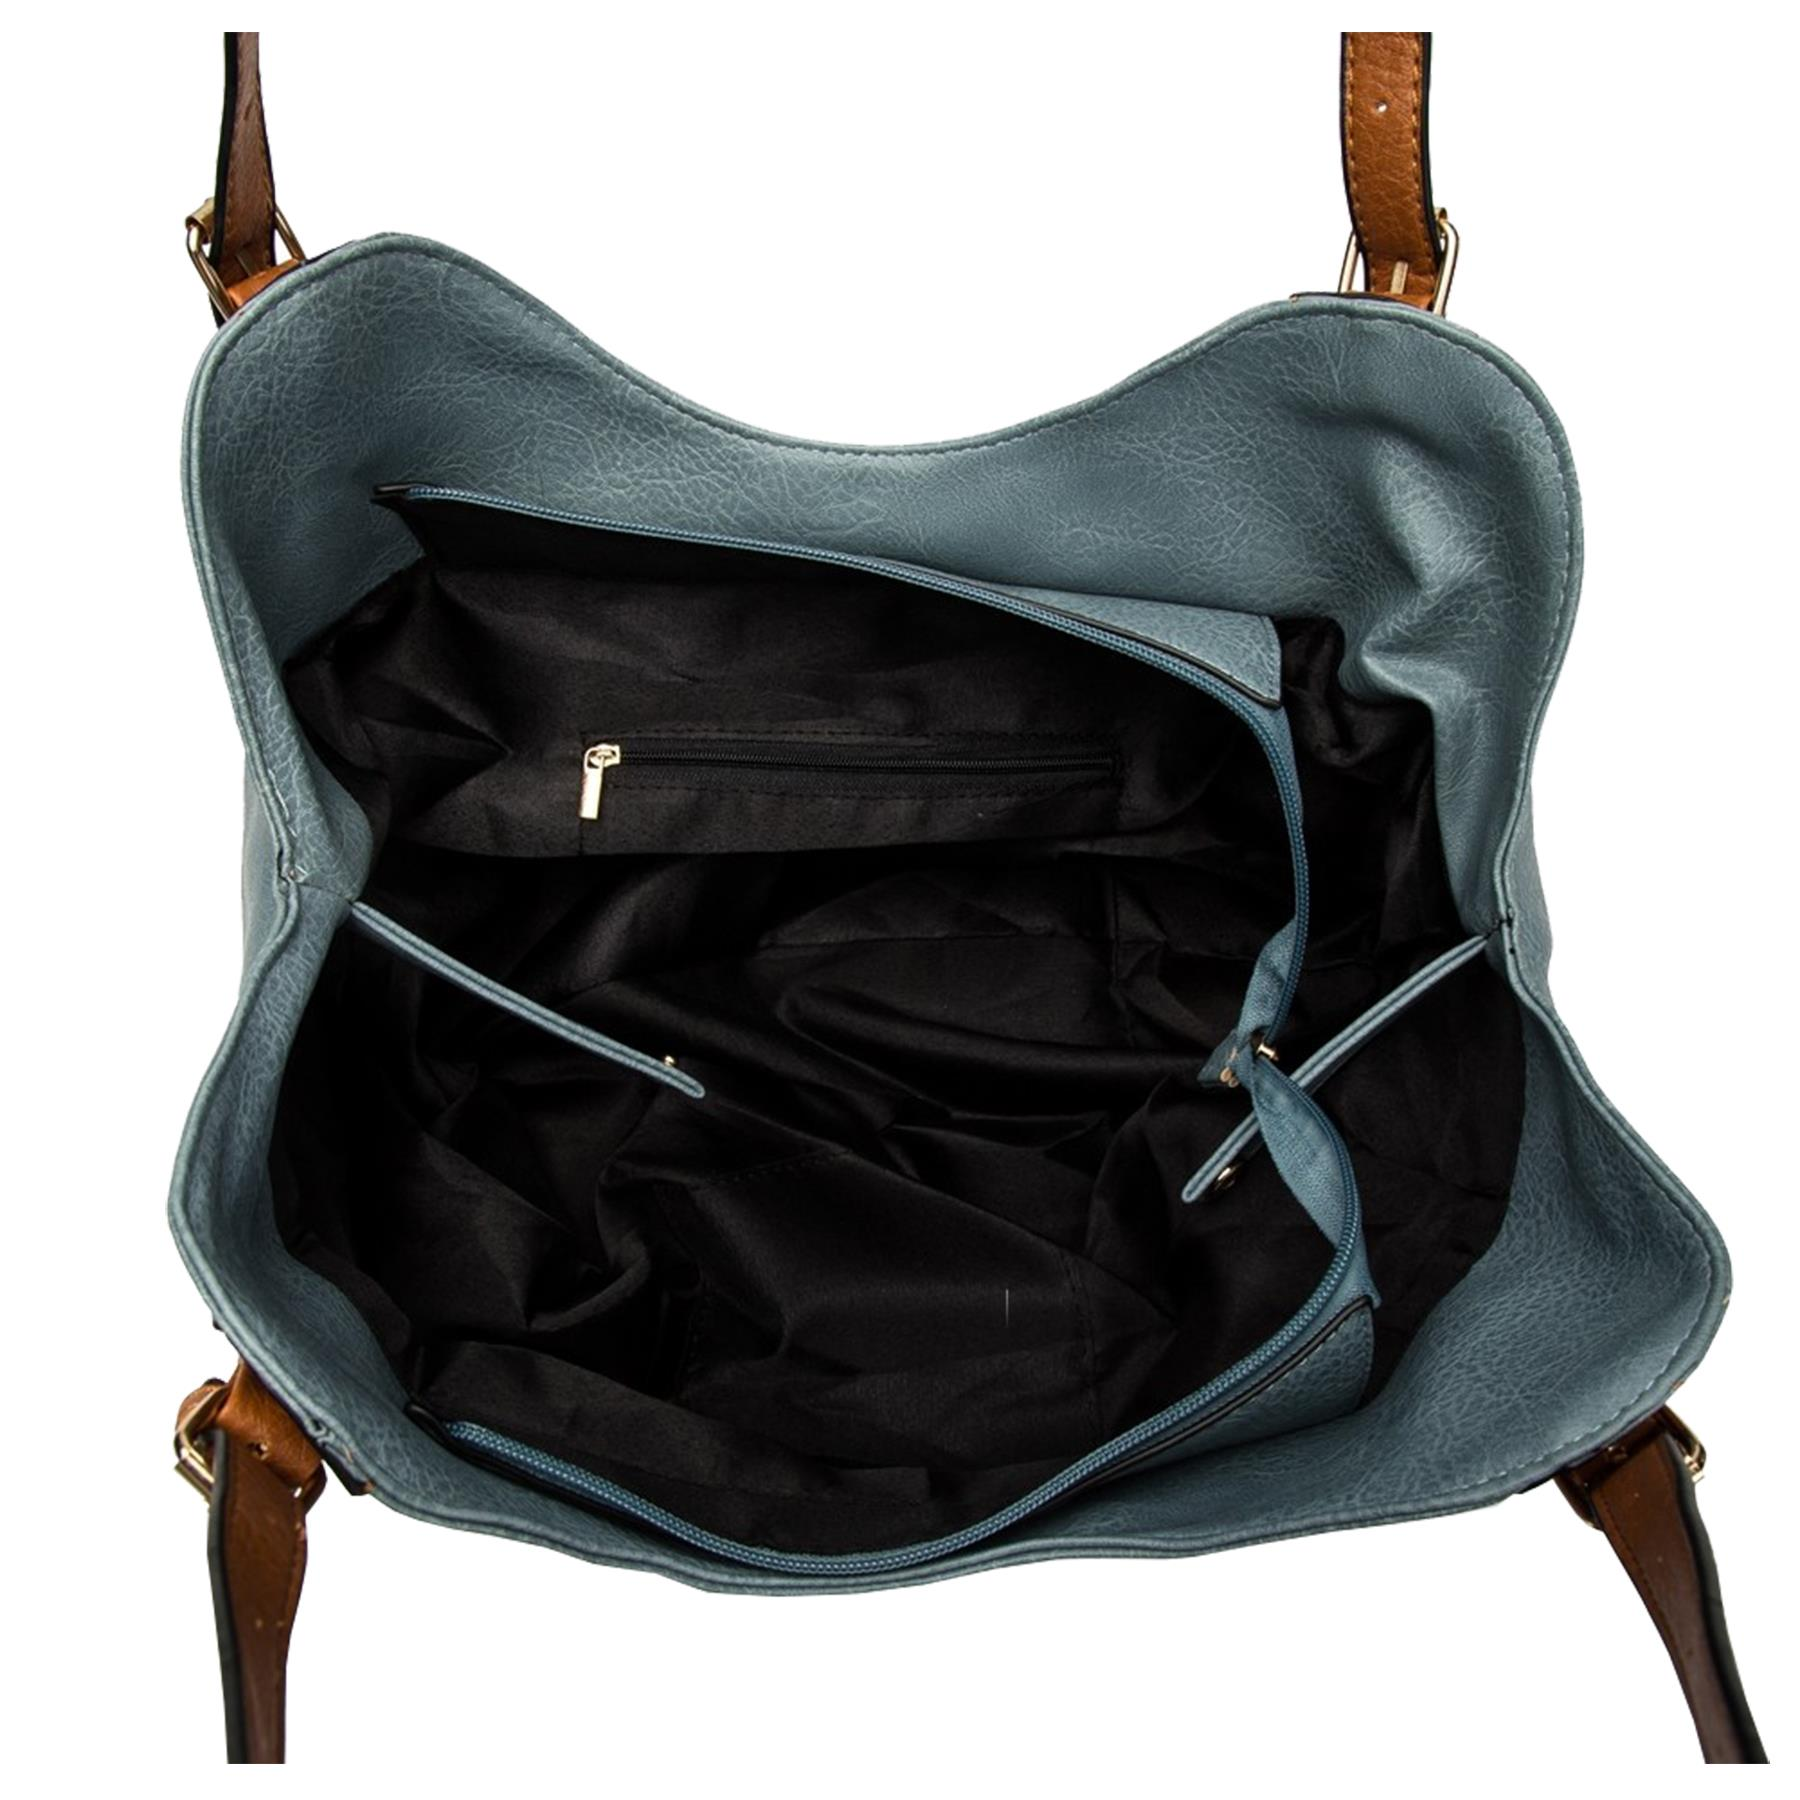 New-Ladies-Buckled-Straps-Two-Toned-Faux-Leather-Slouchy-Shoulder-Bag thumbnail 7